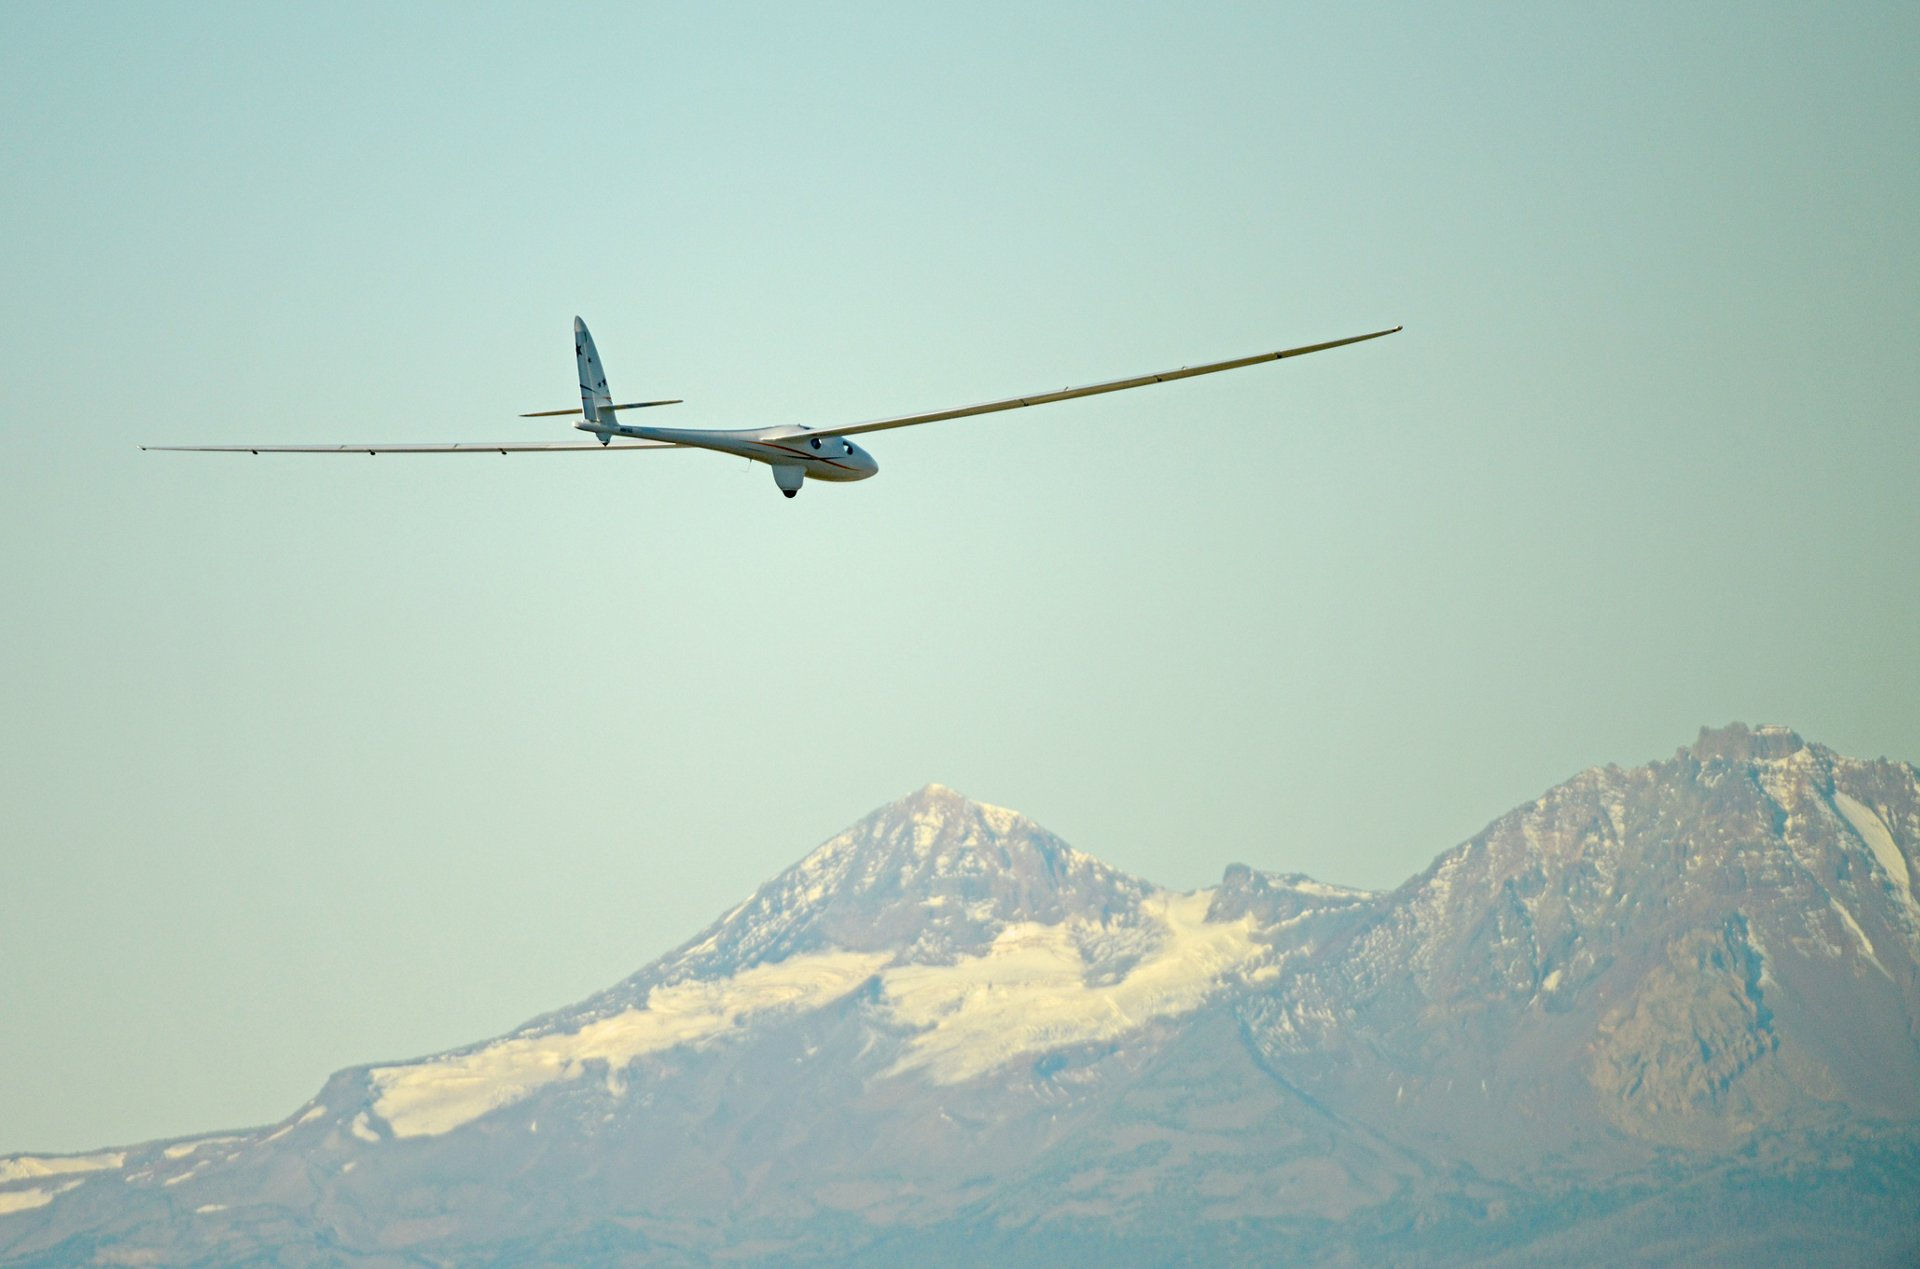 The Perlan 2 glider performs its maiden flight